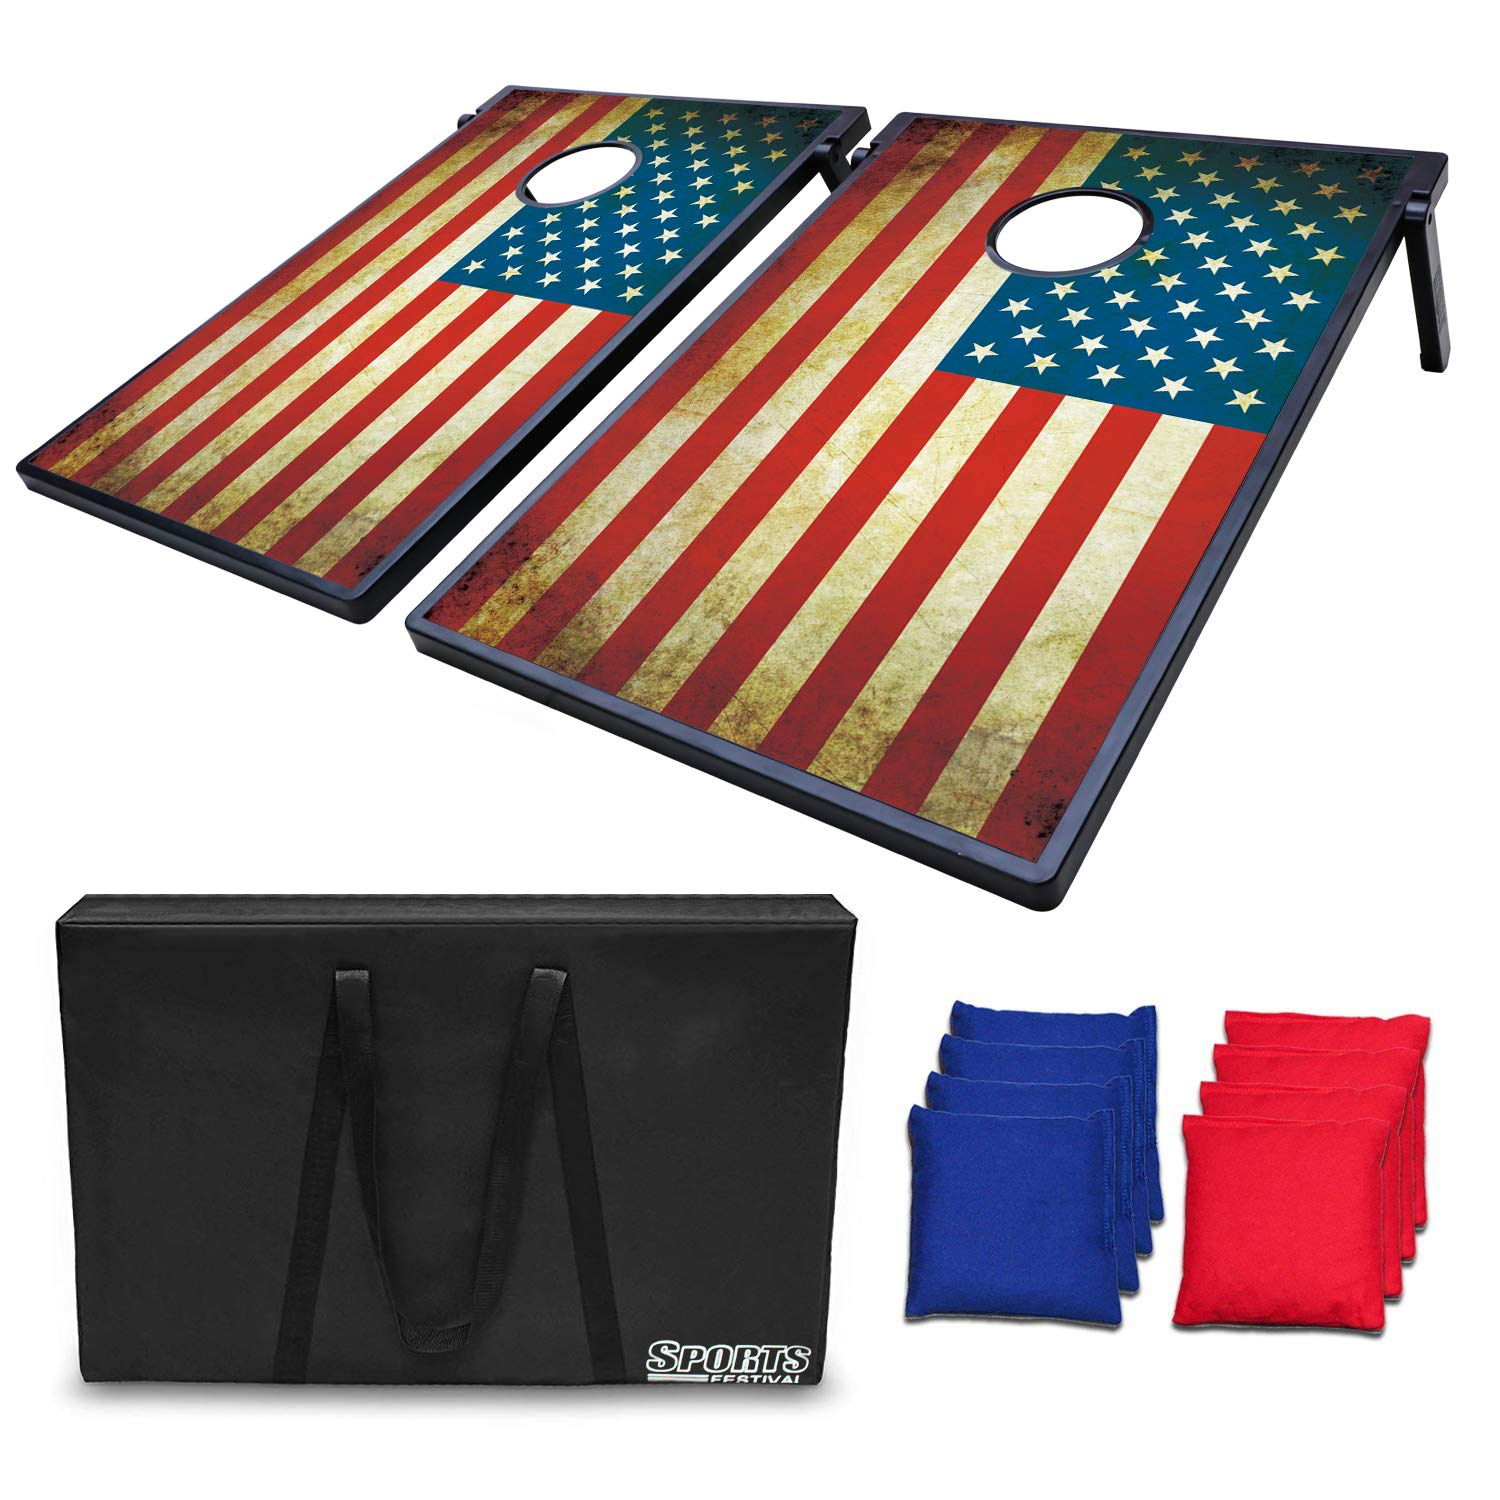 LOKATSE Home Stars and Stipes Cornhole Board Bean Bag Toss Game Set - Two 3'x2' Boards and 8 Bean Bags by Sports Festival